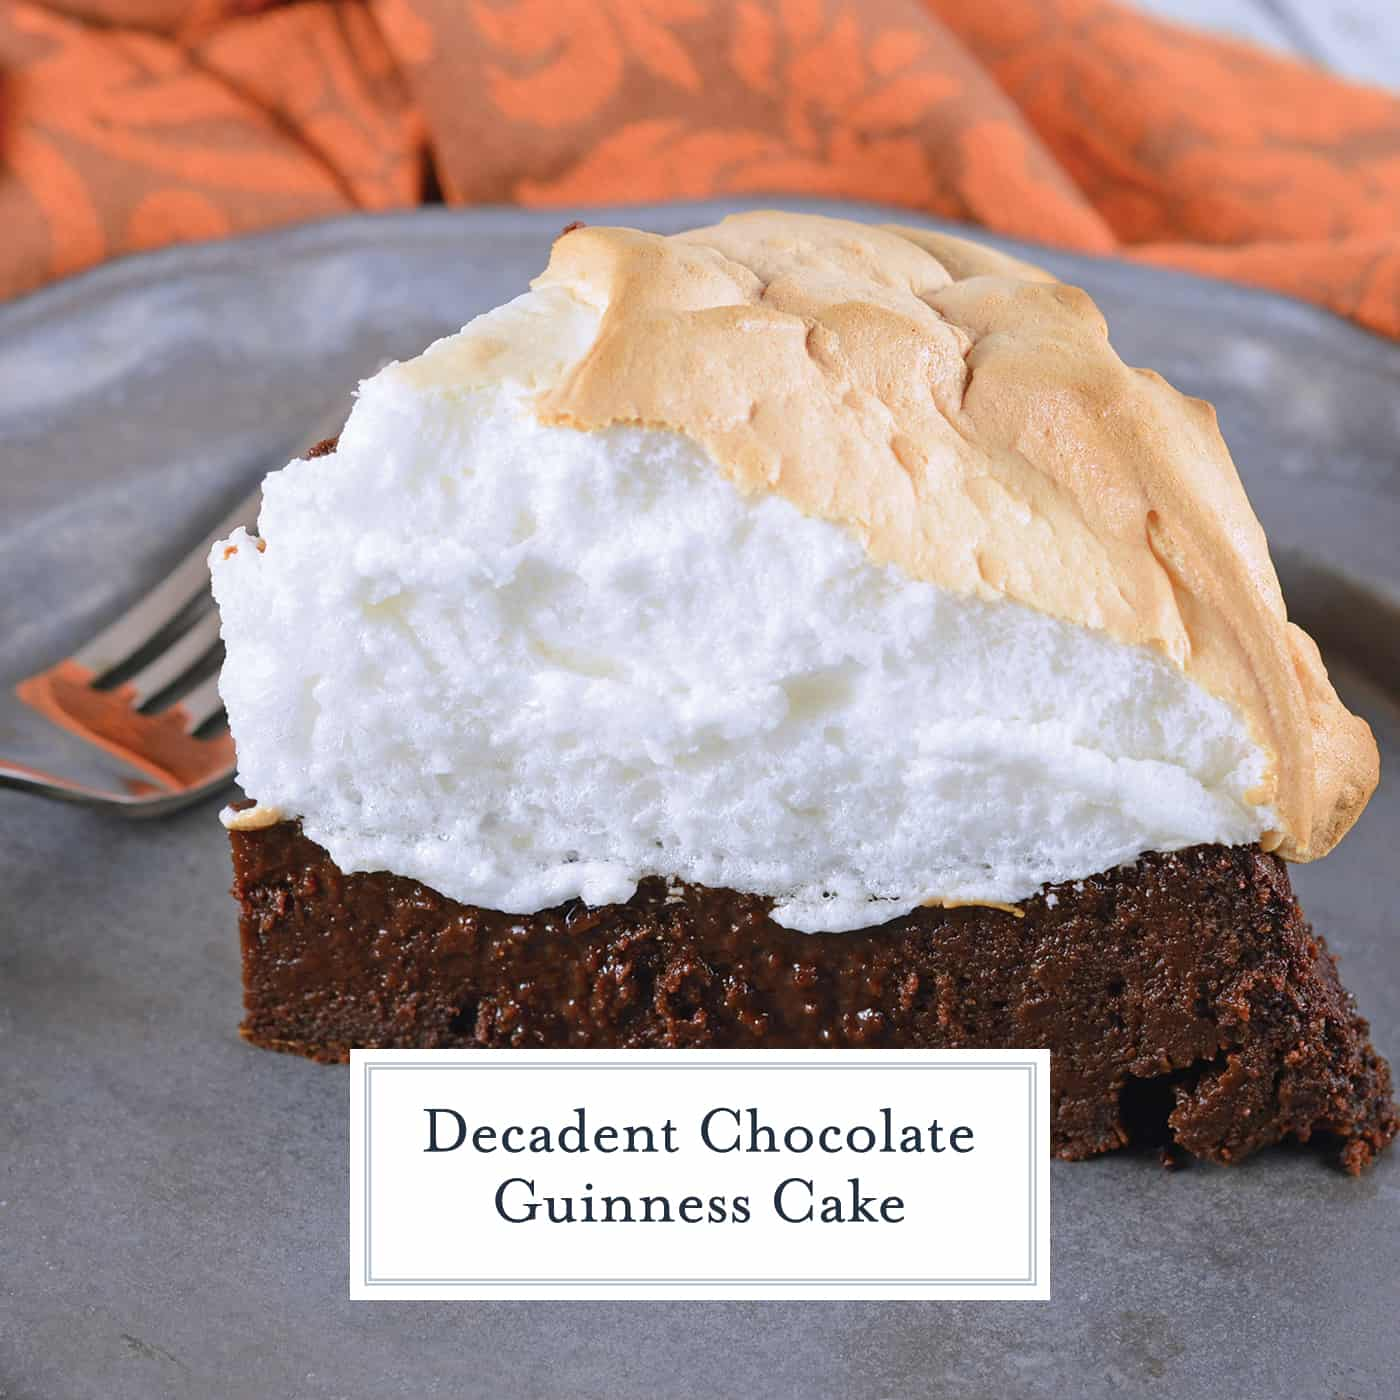 Chocolate Guinness Cake is a super rich and moist cake with fluffy meringue topping. This flourless chocolate cake is perfect for St. Patrick's Day dessert or any other day of the year! #chocolateguinnesscake #flourlesschocolatecake www.savoryexperiments.com